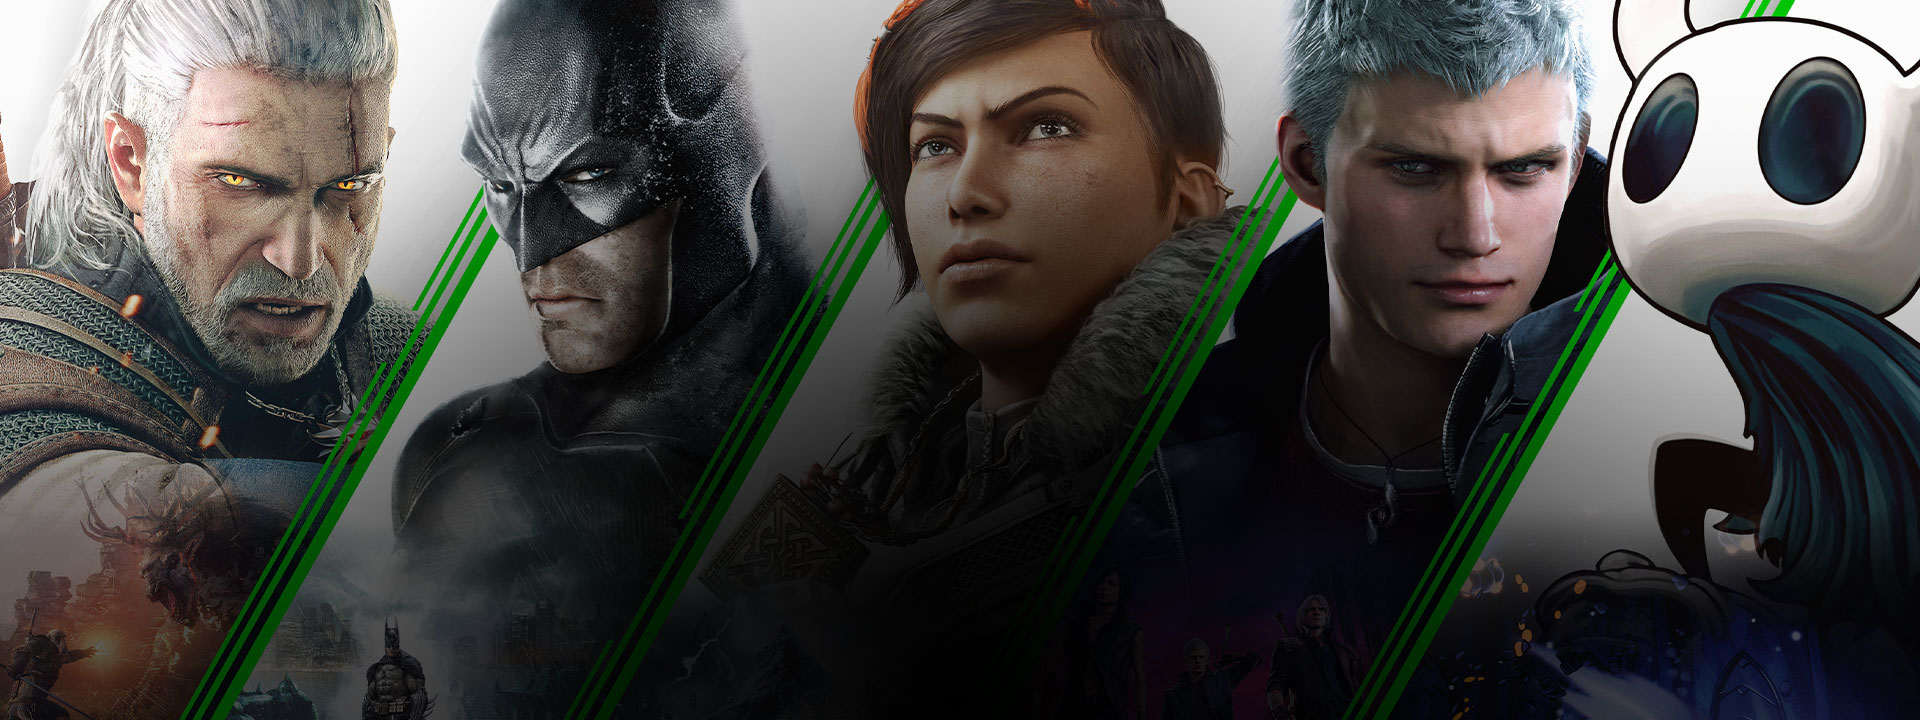 Koláž z hier dostupných na konzole Xbox vrátane hry The Witcher 3: Wild Hunt, Batman (Arkham Series), Gears 5, Devil May Cry 5 a Hollow Knight.